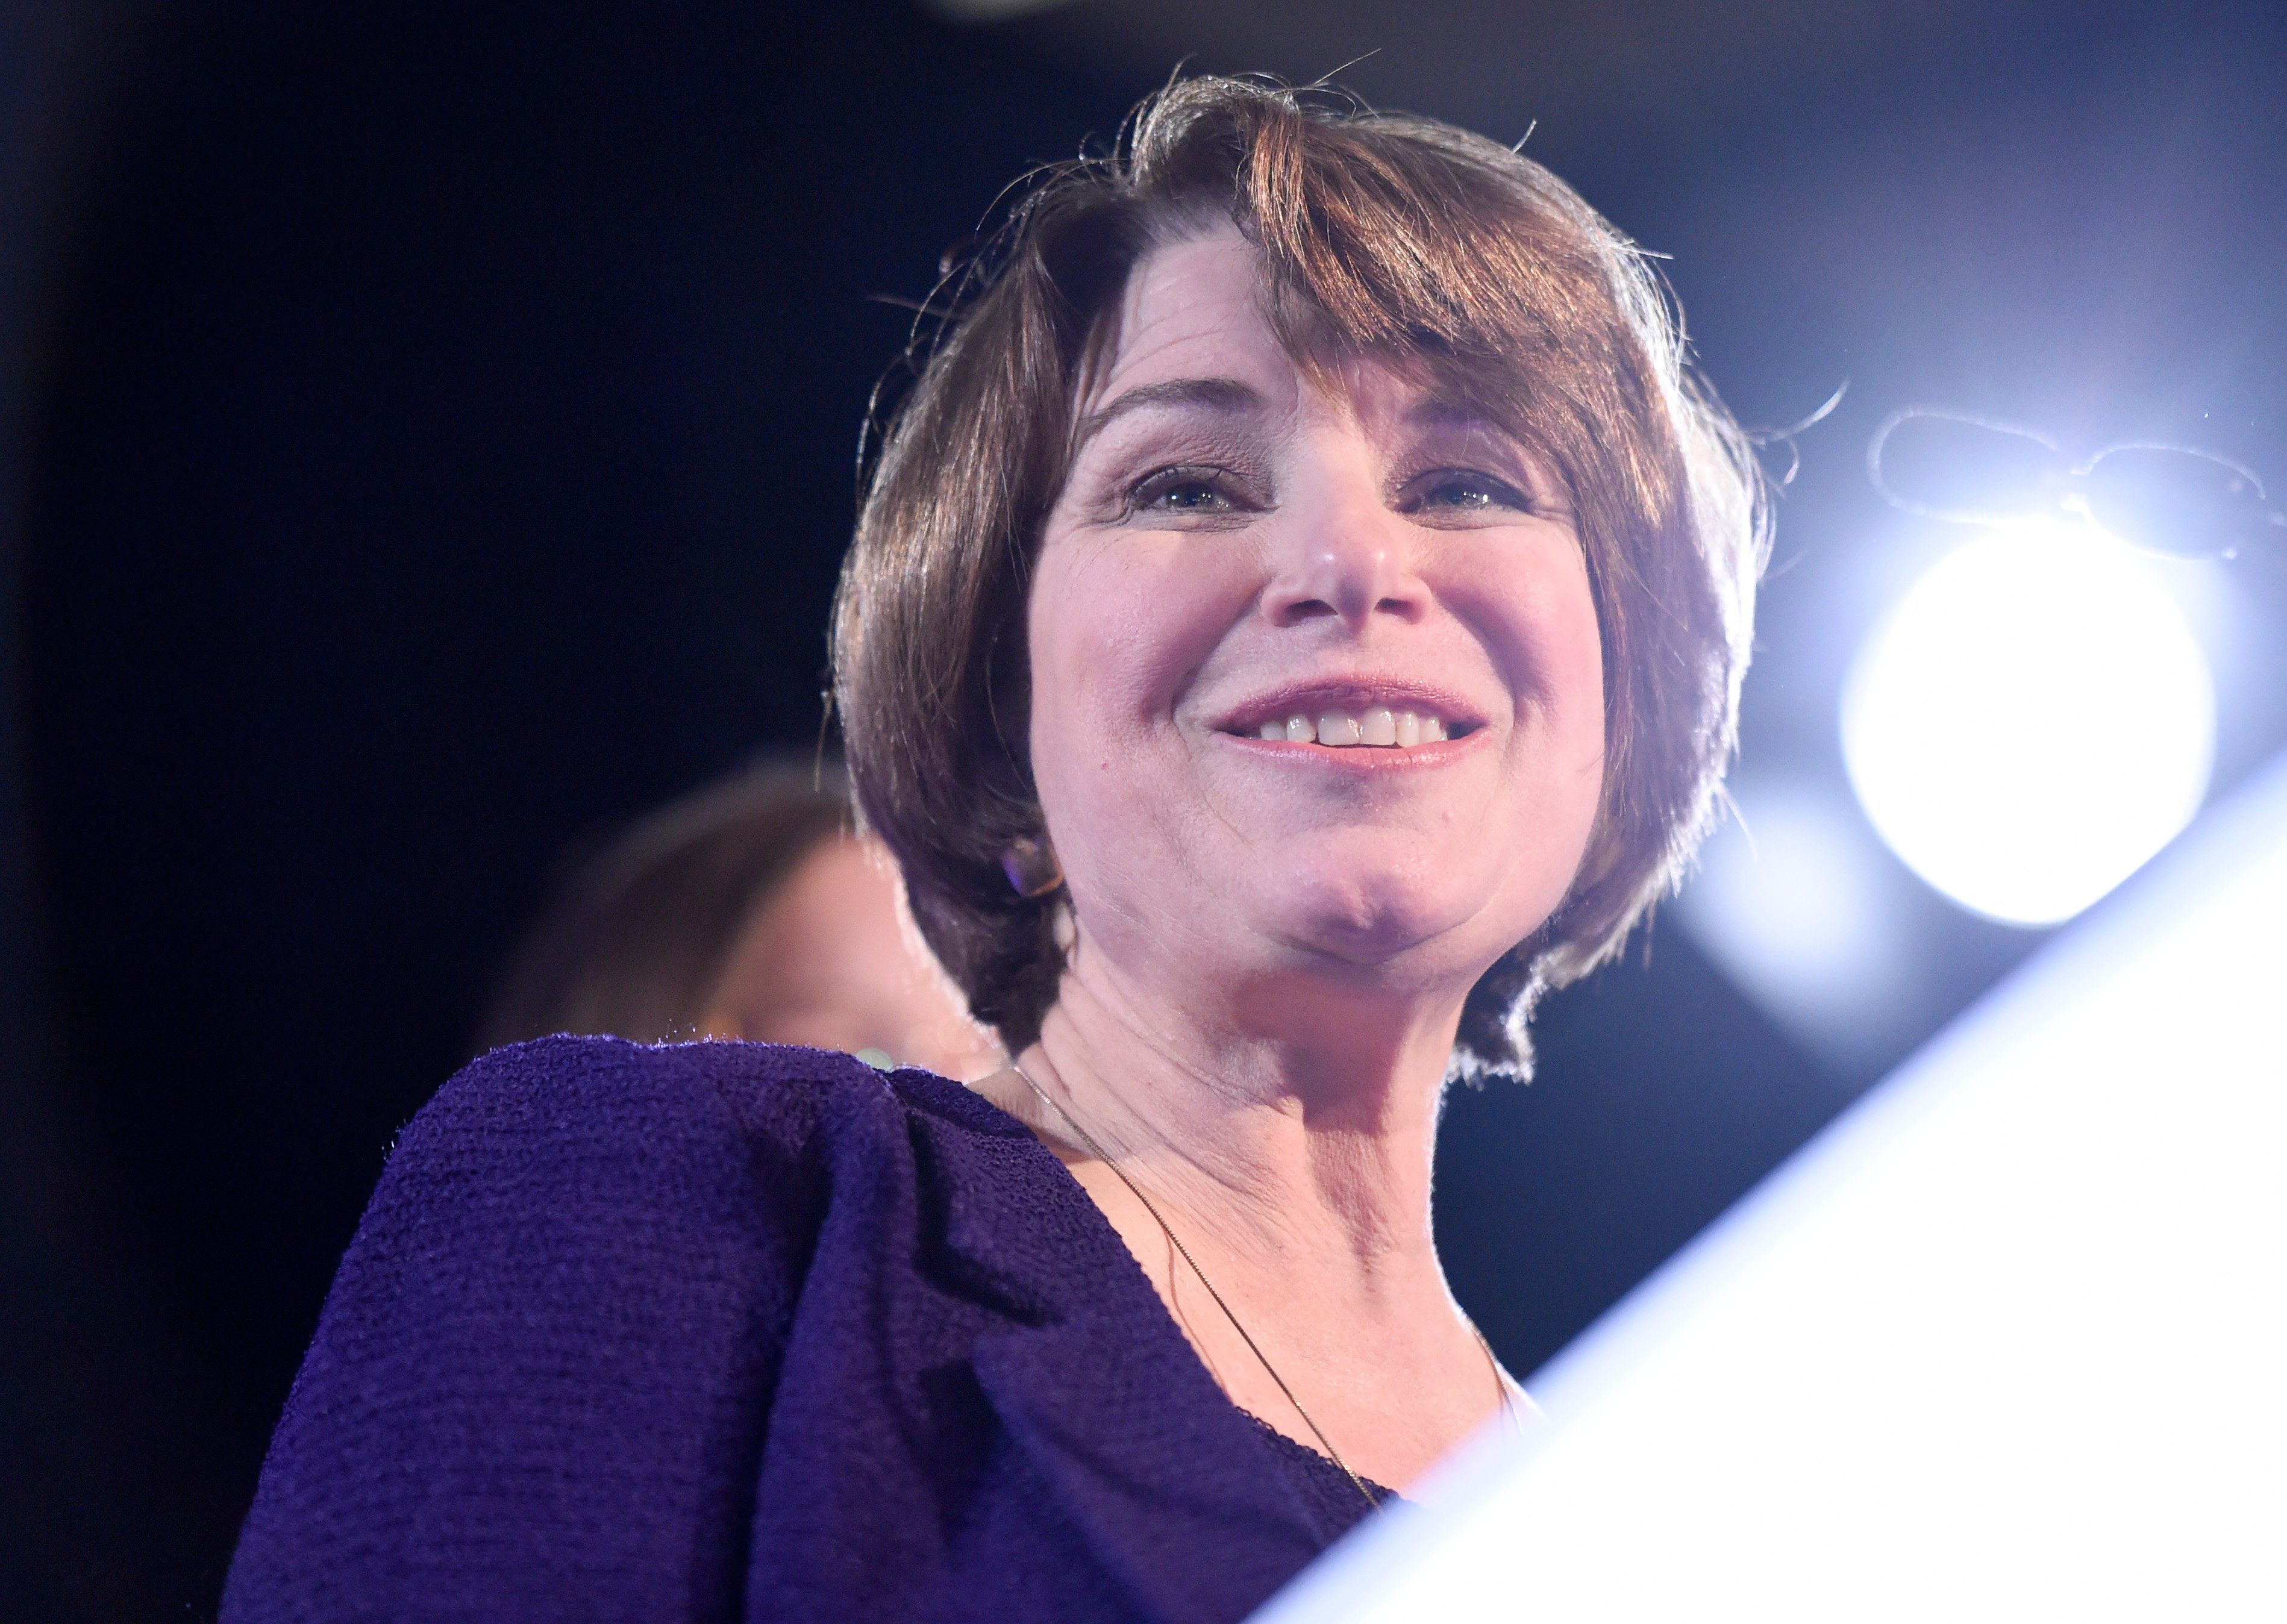 Sen. Amy Klobuchar, D-Minn., speaks after winning re-election during a election night event held by the Democratic Party Tuesday, Nov. 6, 2018, in St. Paul, Minn. (AP Photo/Hannah Foslien)